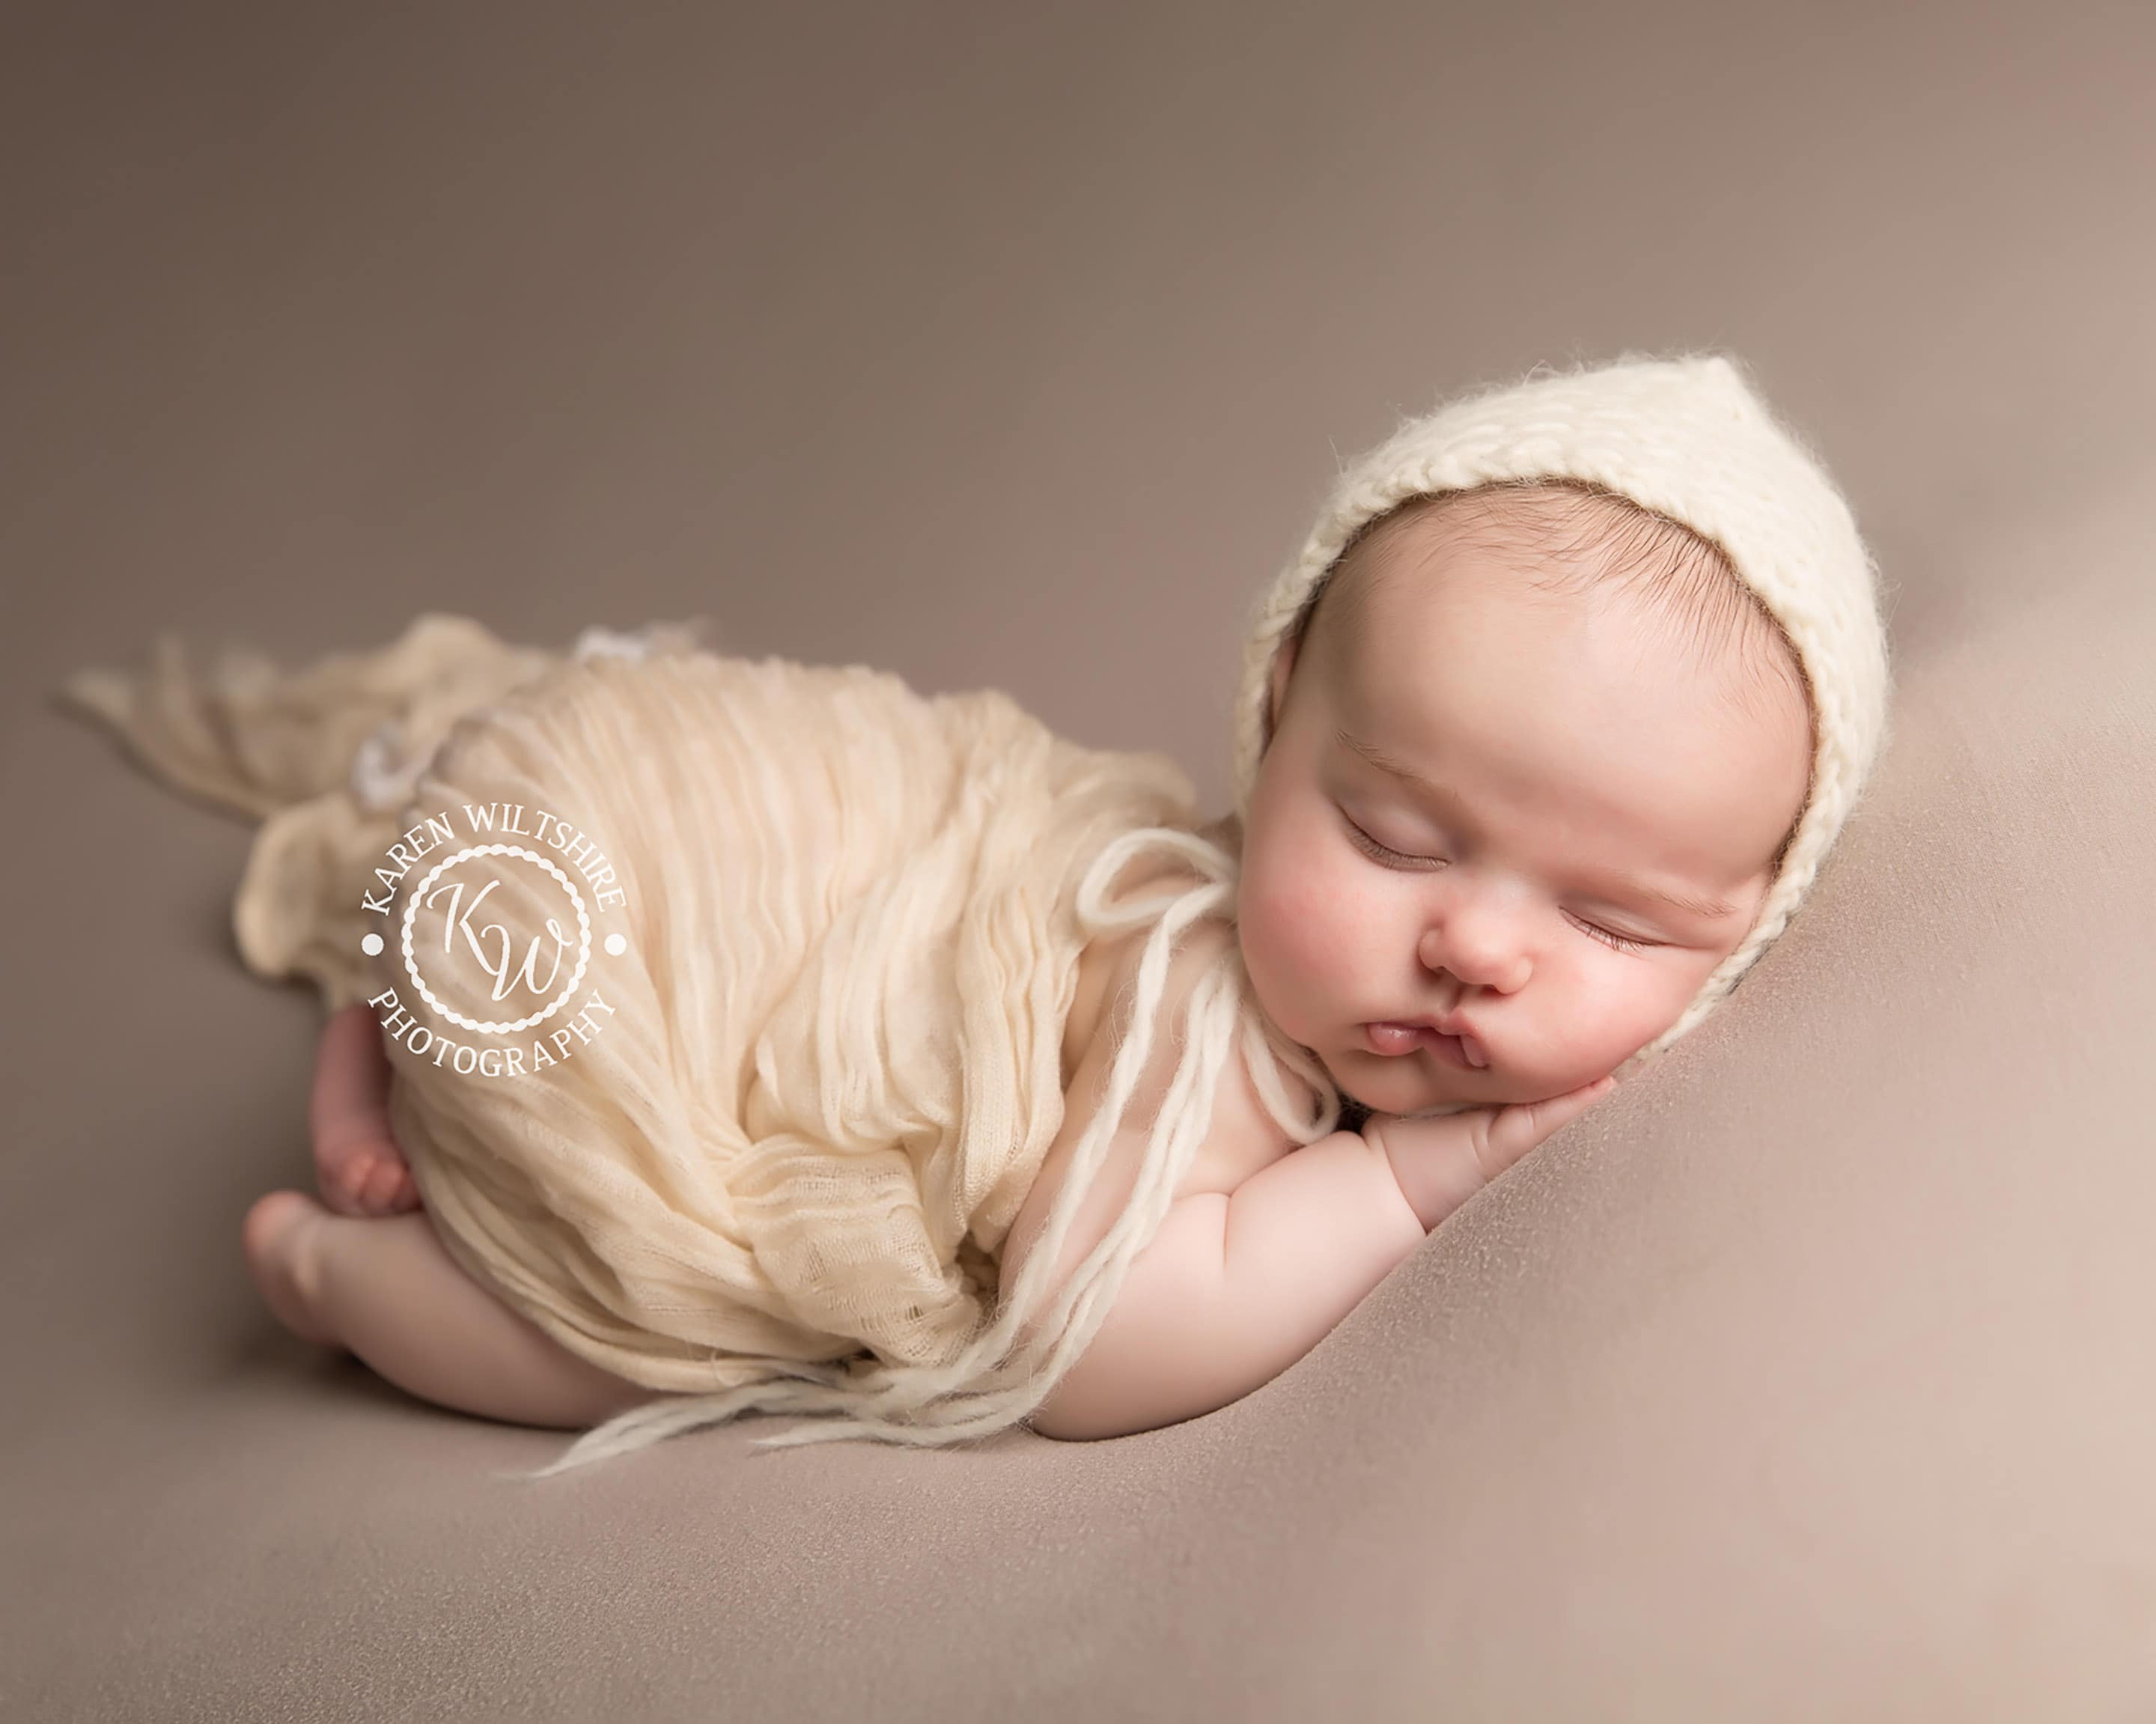 Older newborn baby girl on her tummy in a cream wrap and hat